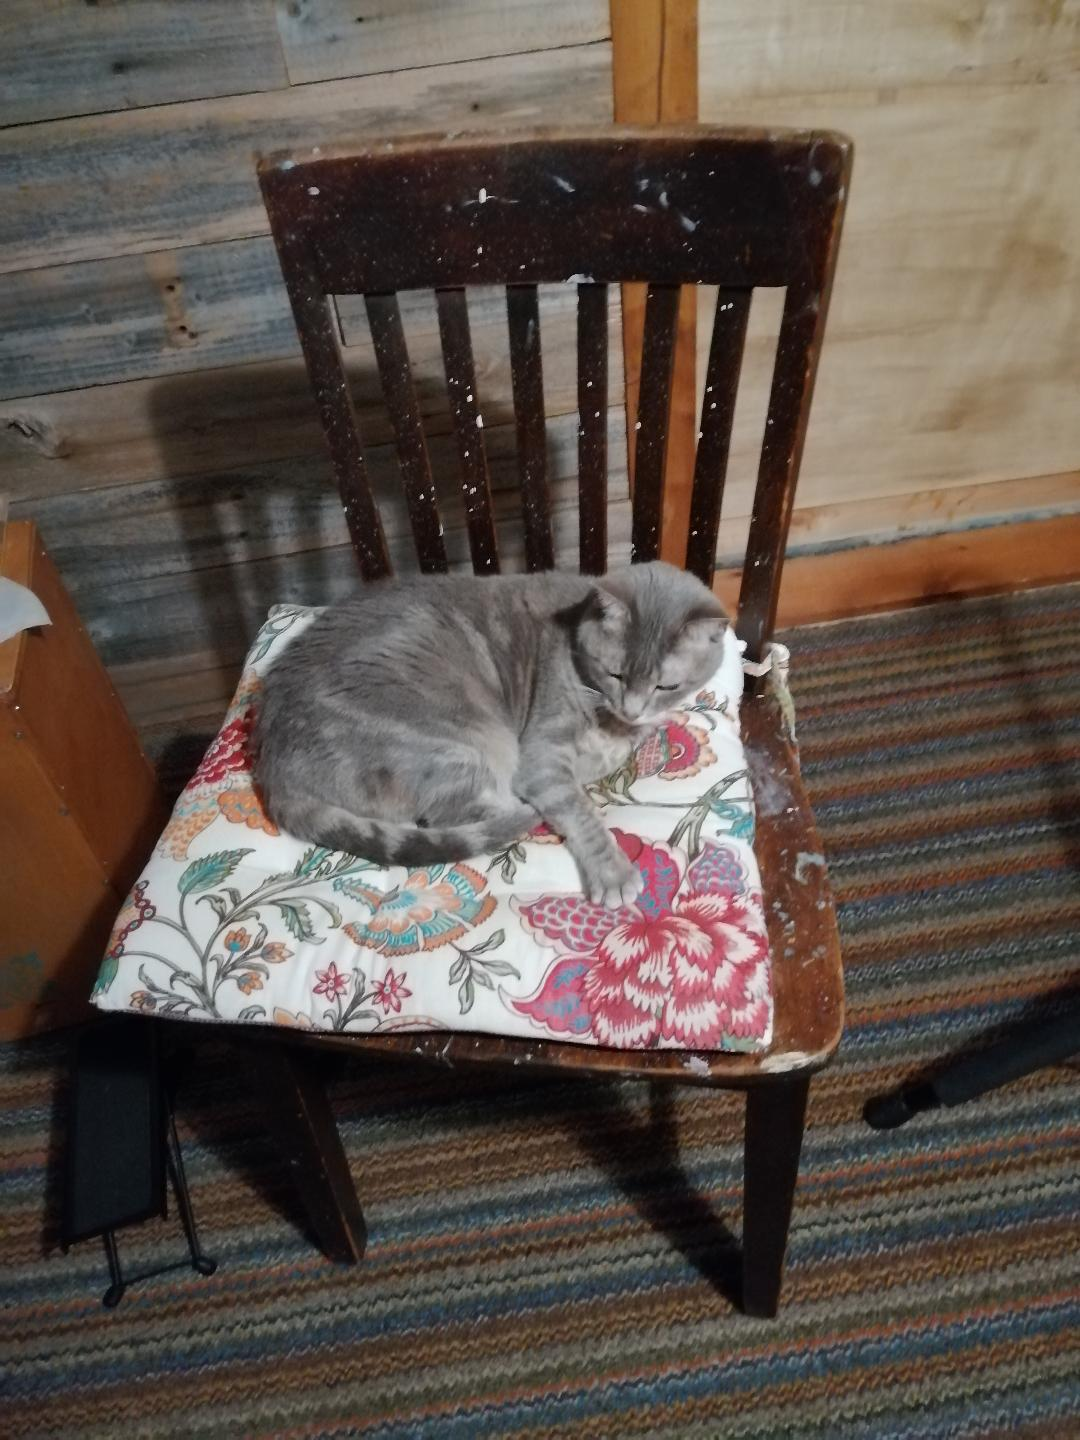 My Cat Campaigns To Be Chairman Of The Bored ~ a short poem by Katrina Curtiss 4/14/2020